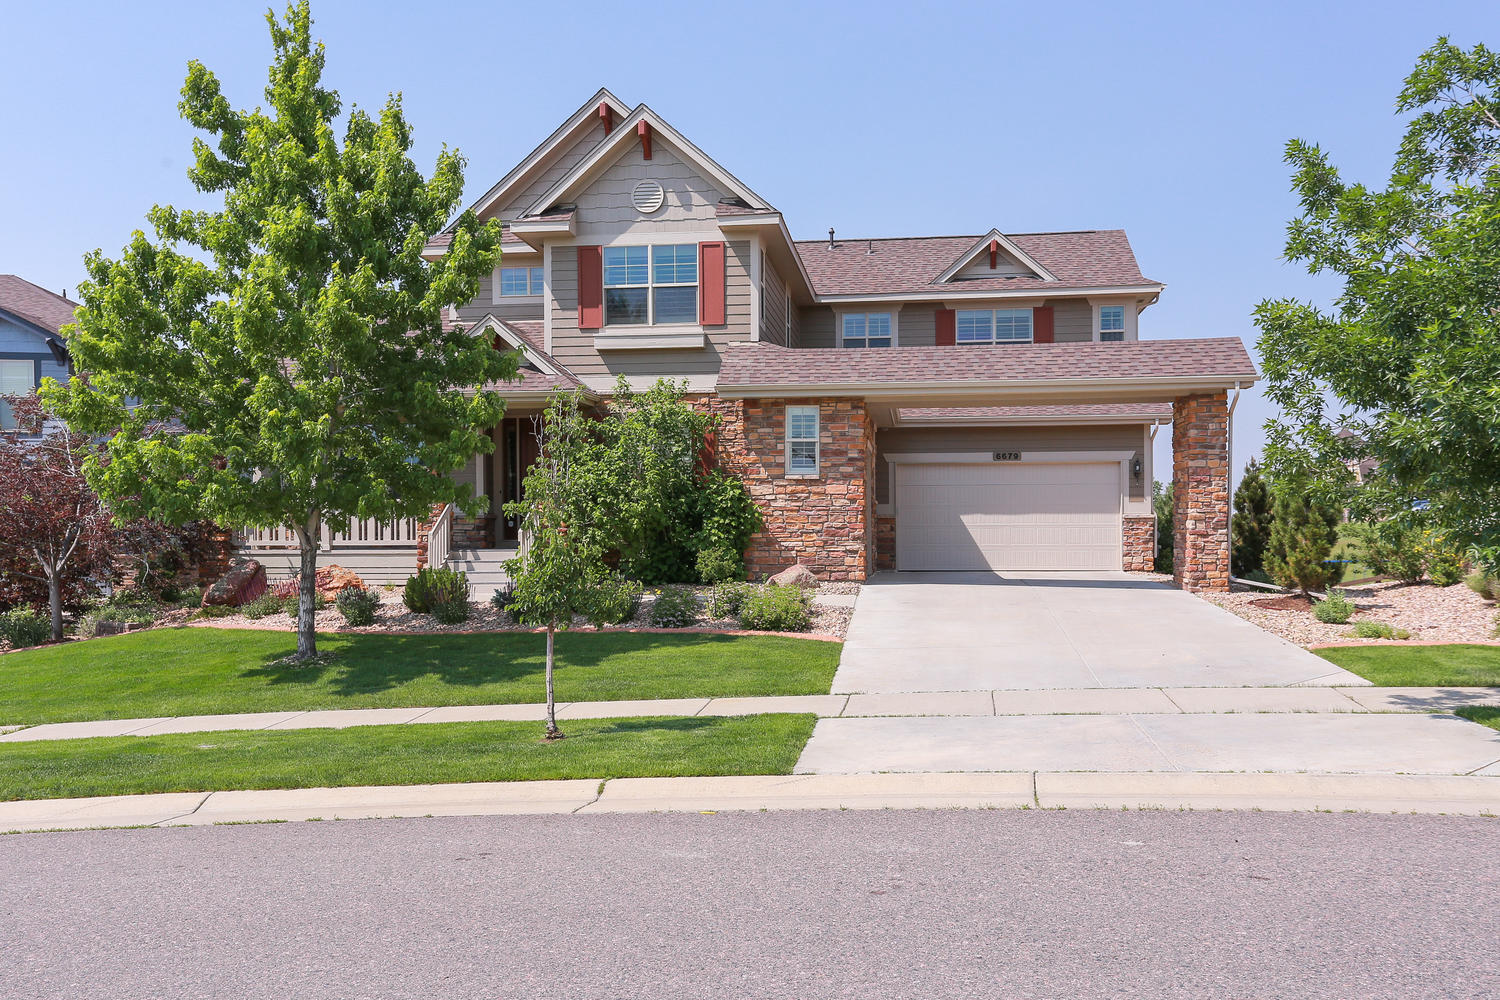 southshore home for sale in aurora co